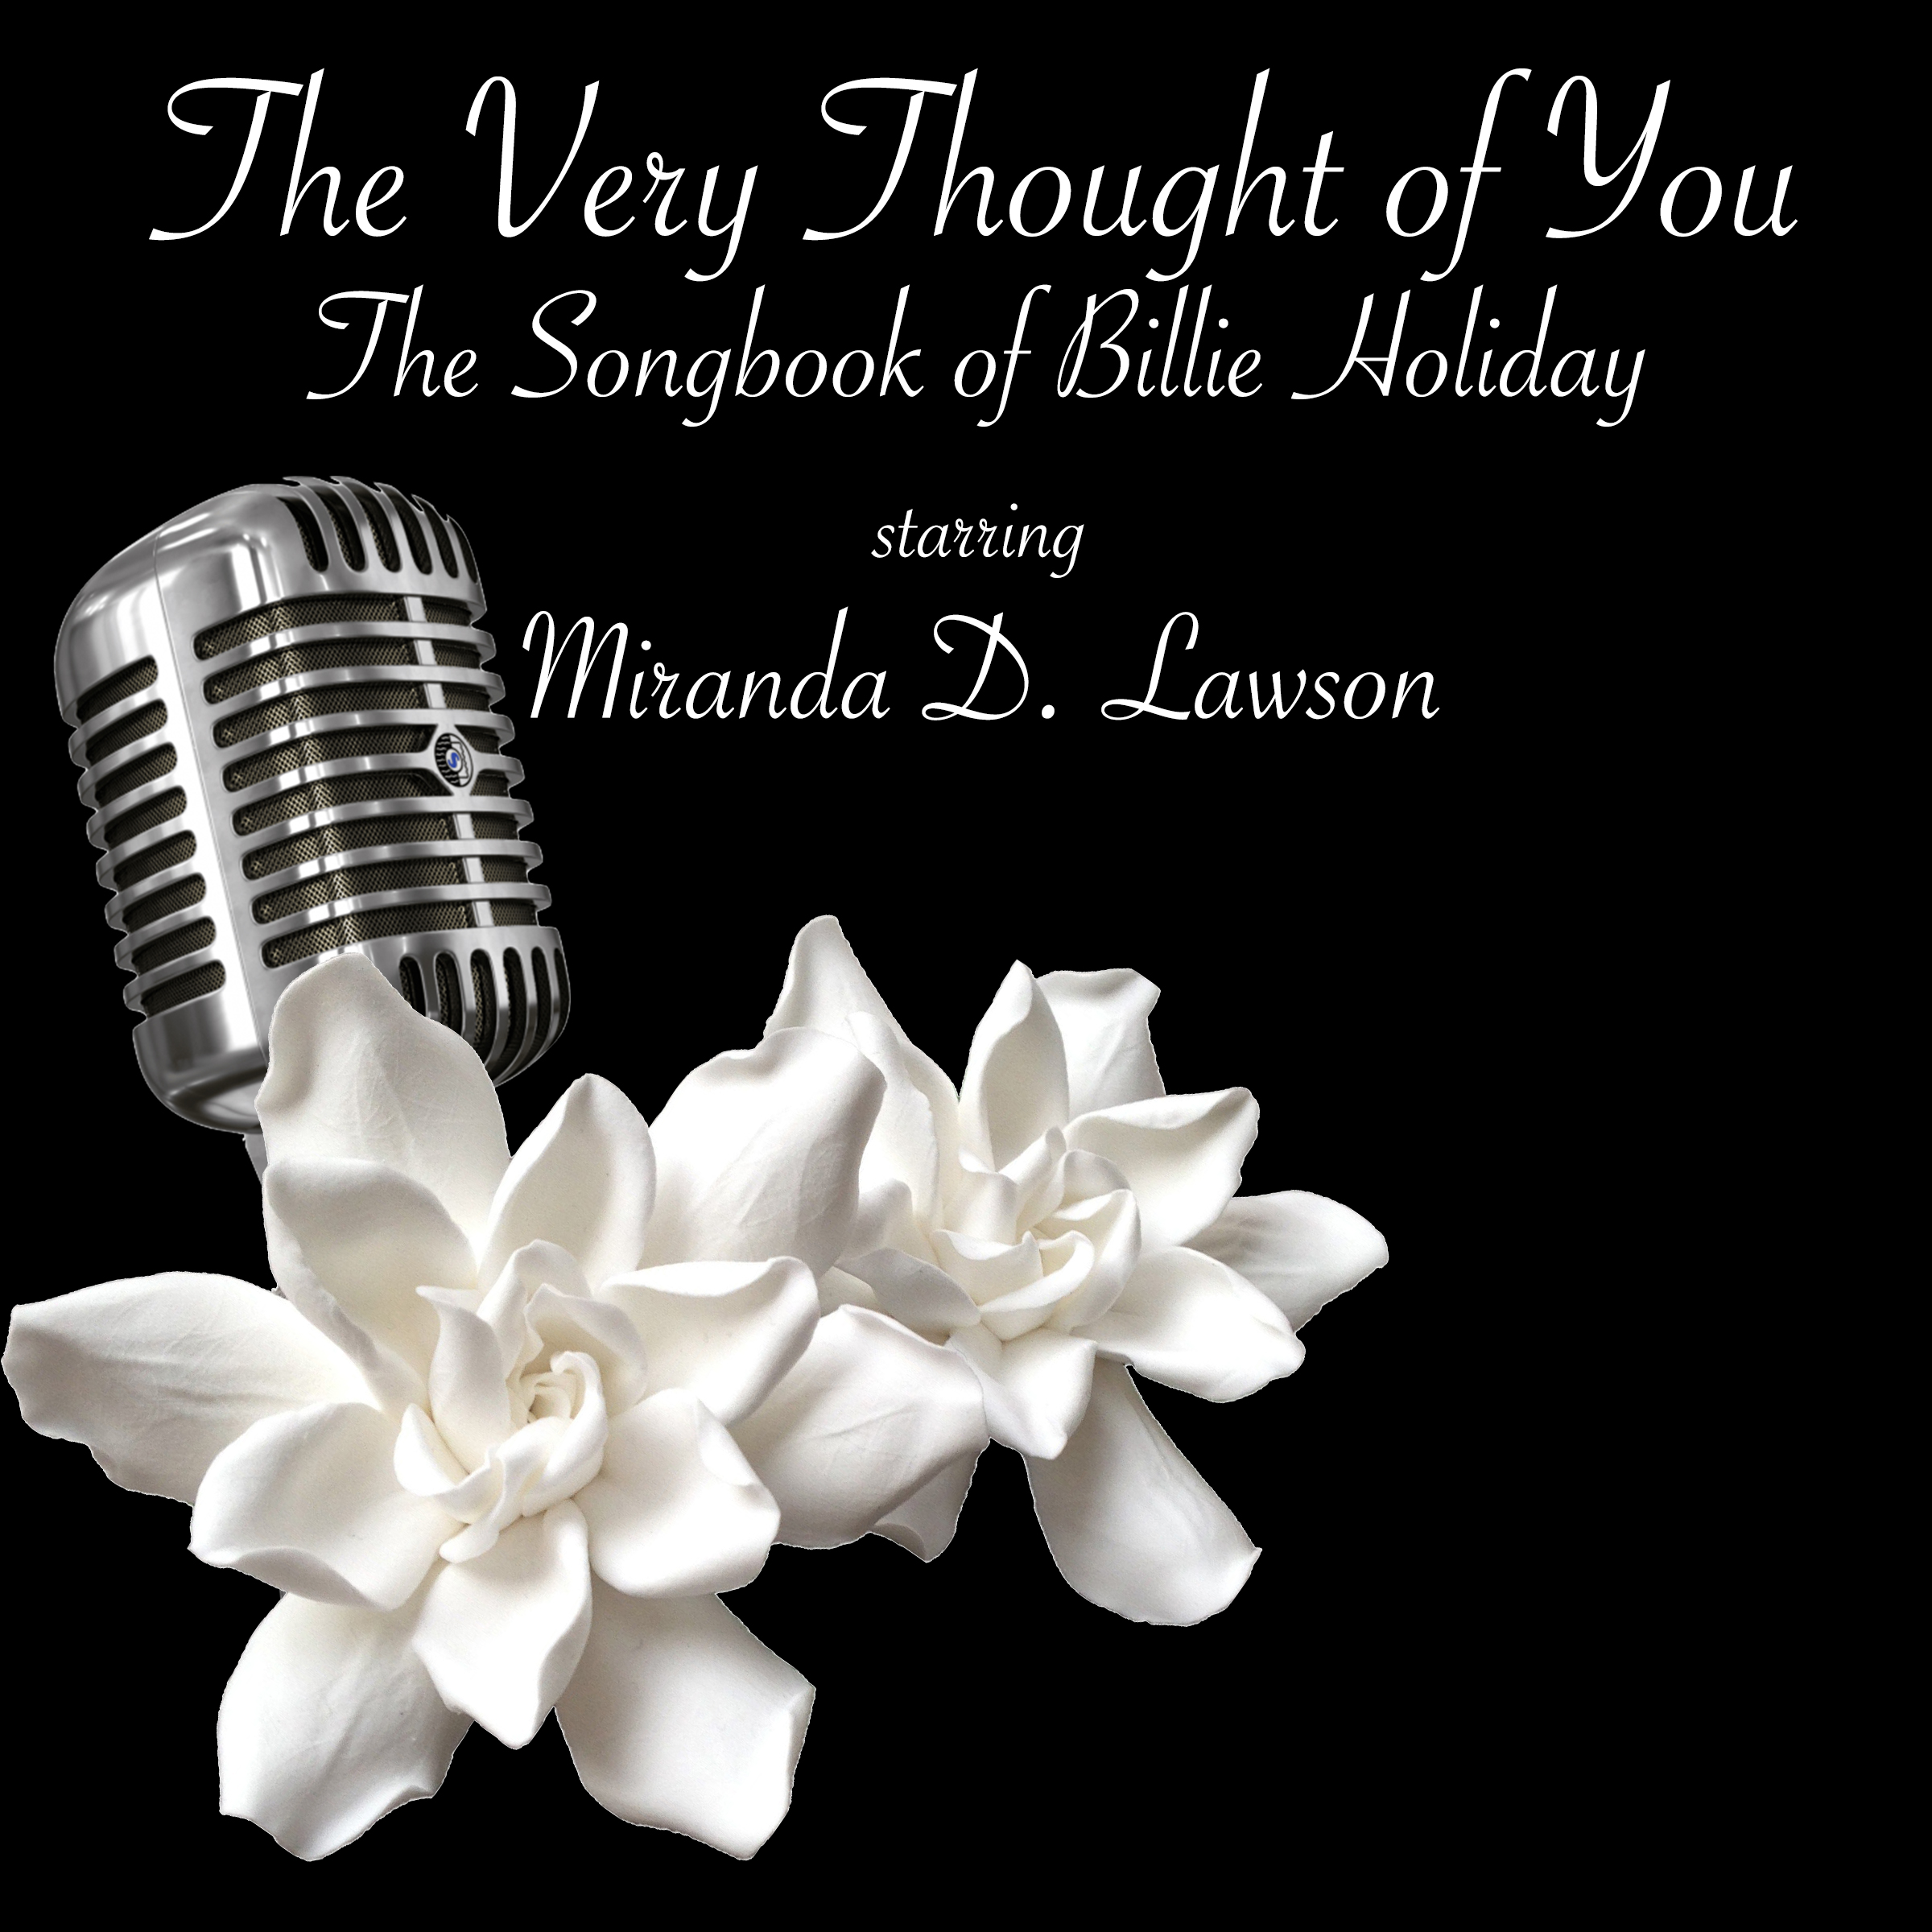 The Very Thought Of You: The Songbook of Billie Holiday